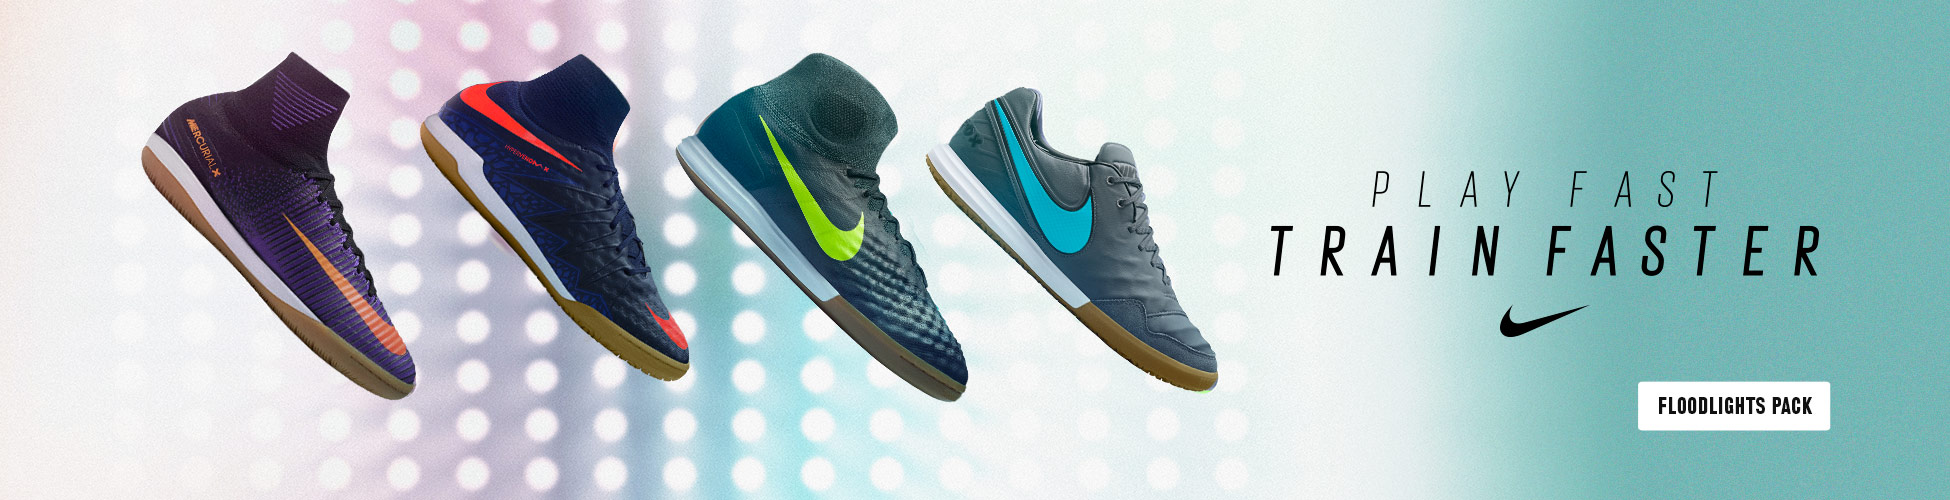 Nike Floodlights Pack Sala